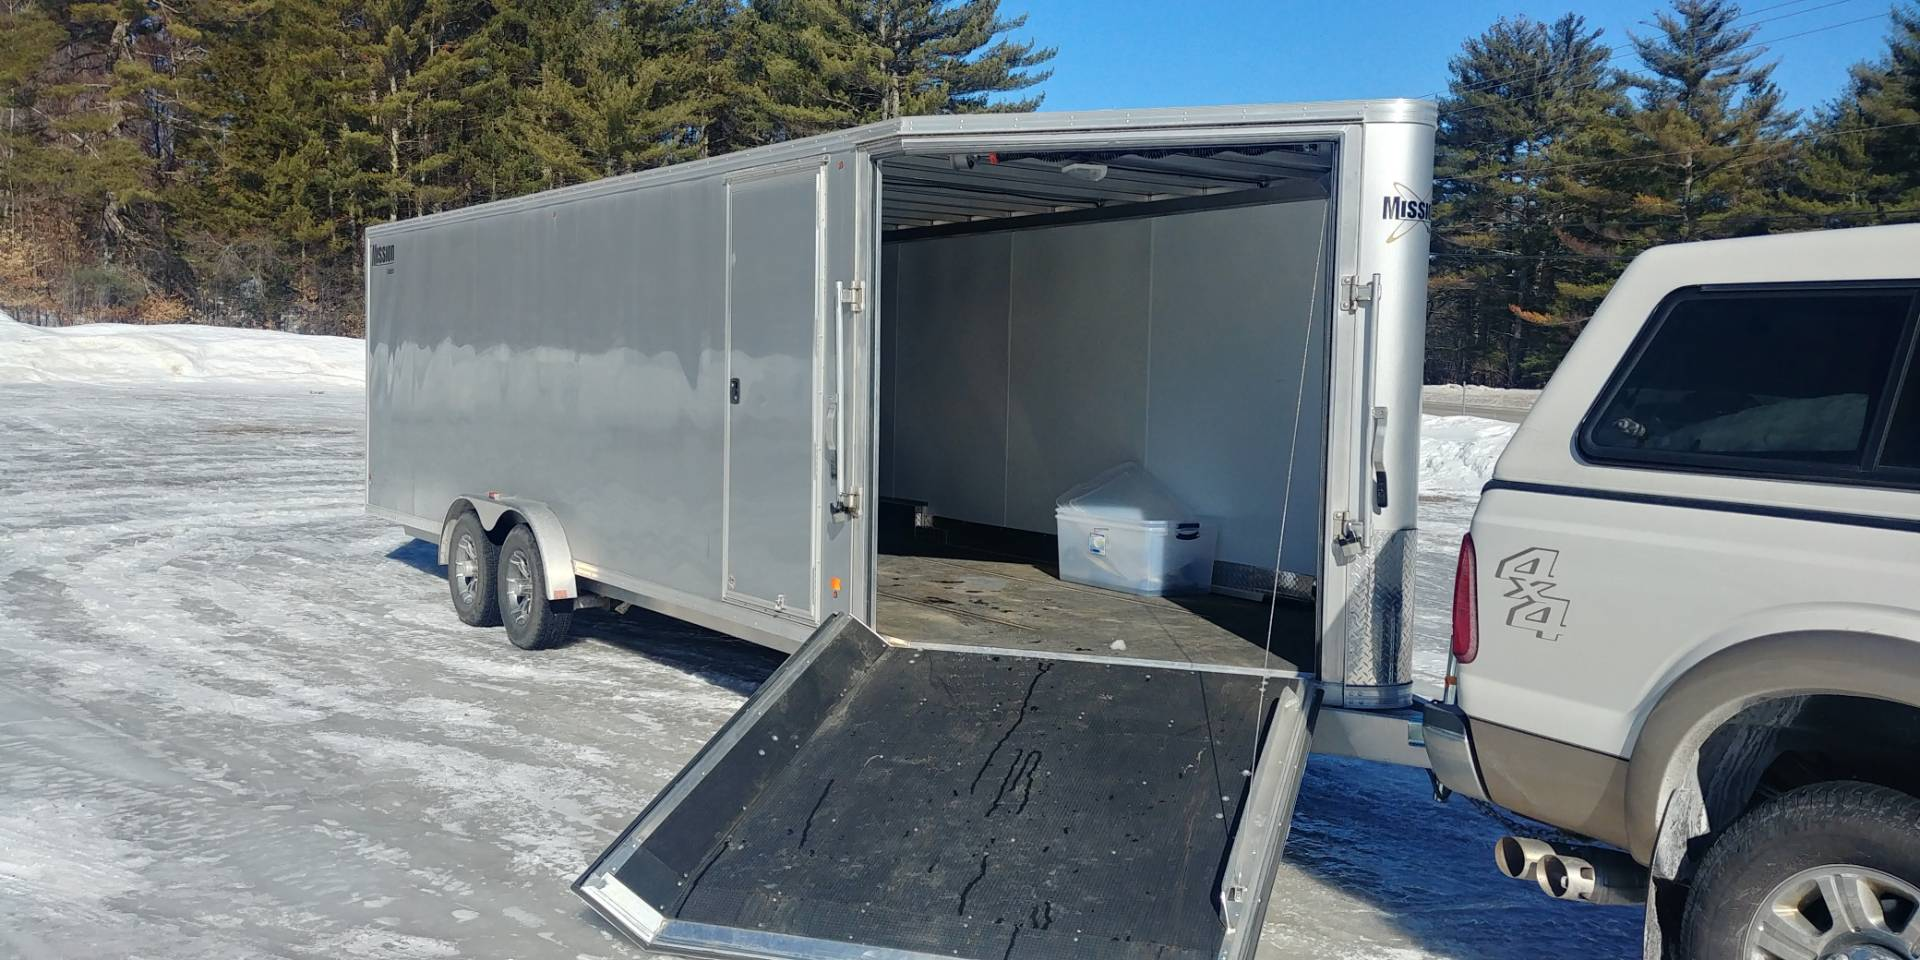 2016 E-Z Hauler 7.5x24 4 place in Tamworth, New Hampshire